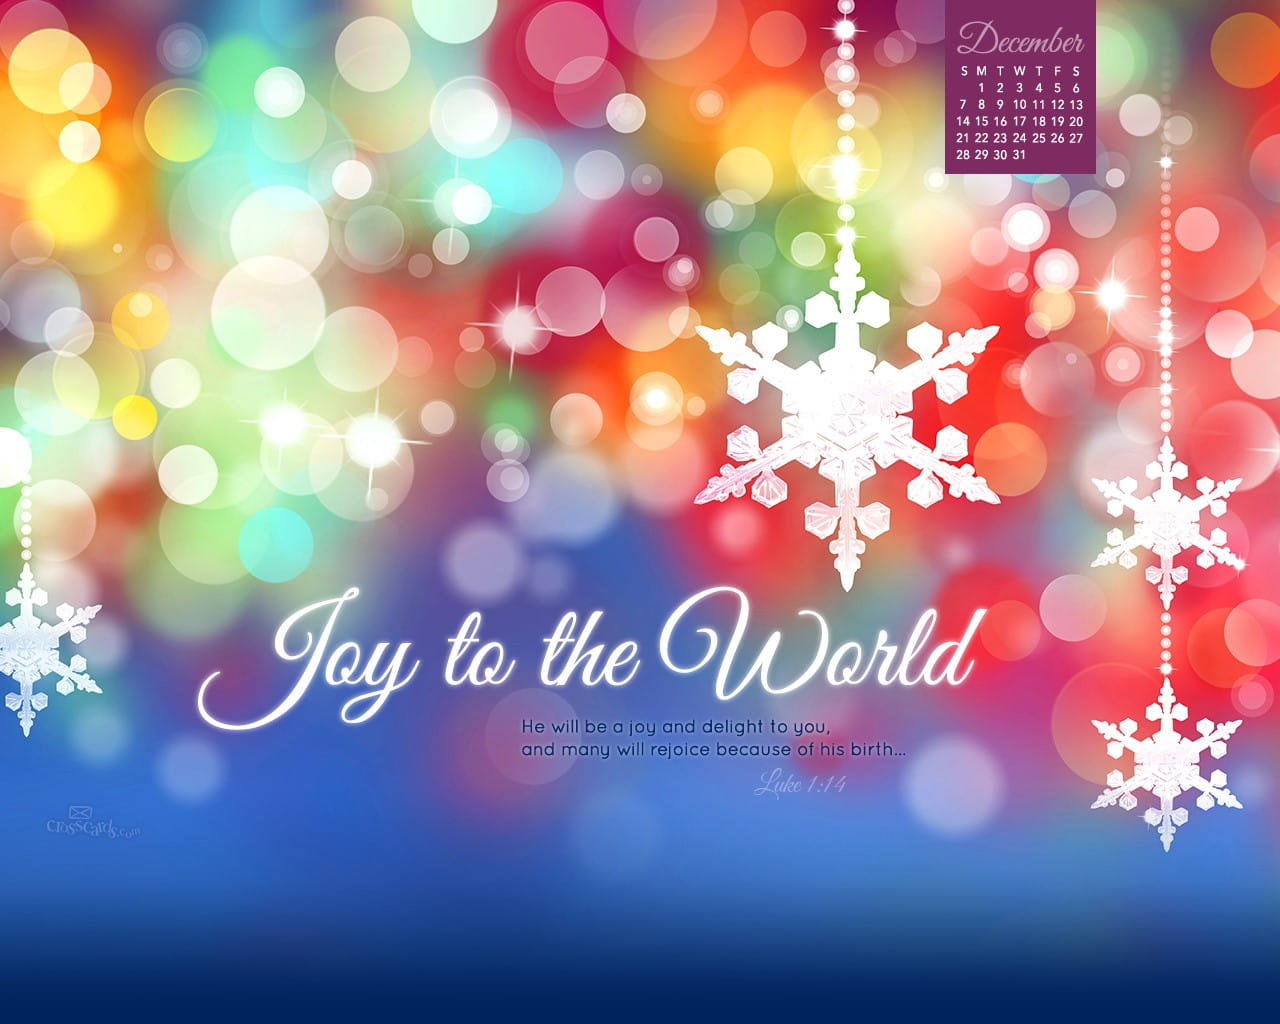 December 2014 joy to the world desktop calendar free - Crosscards christian wallpaper ...